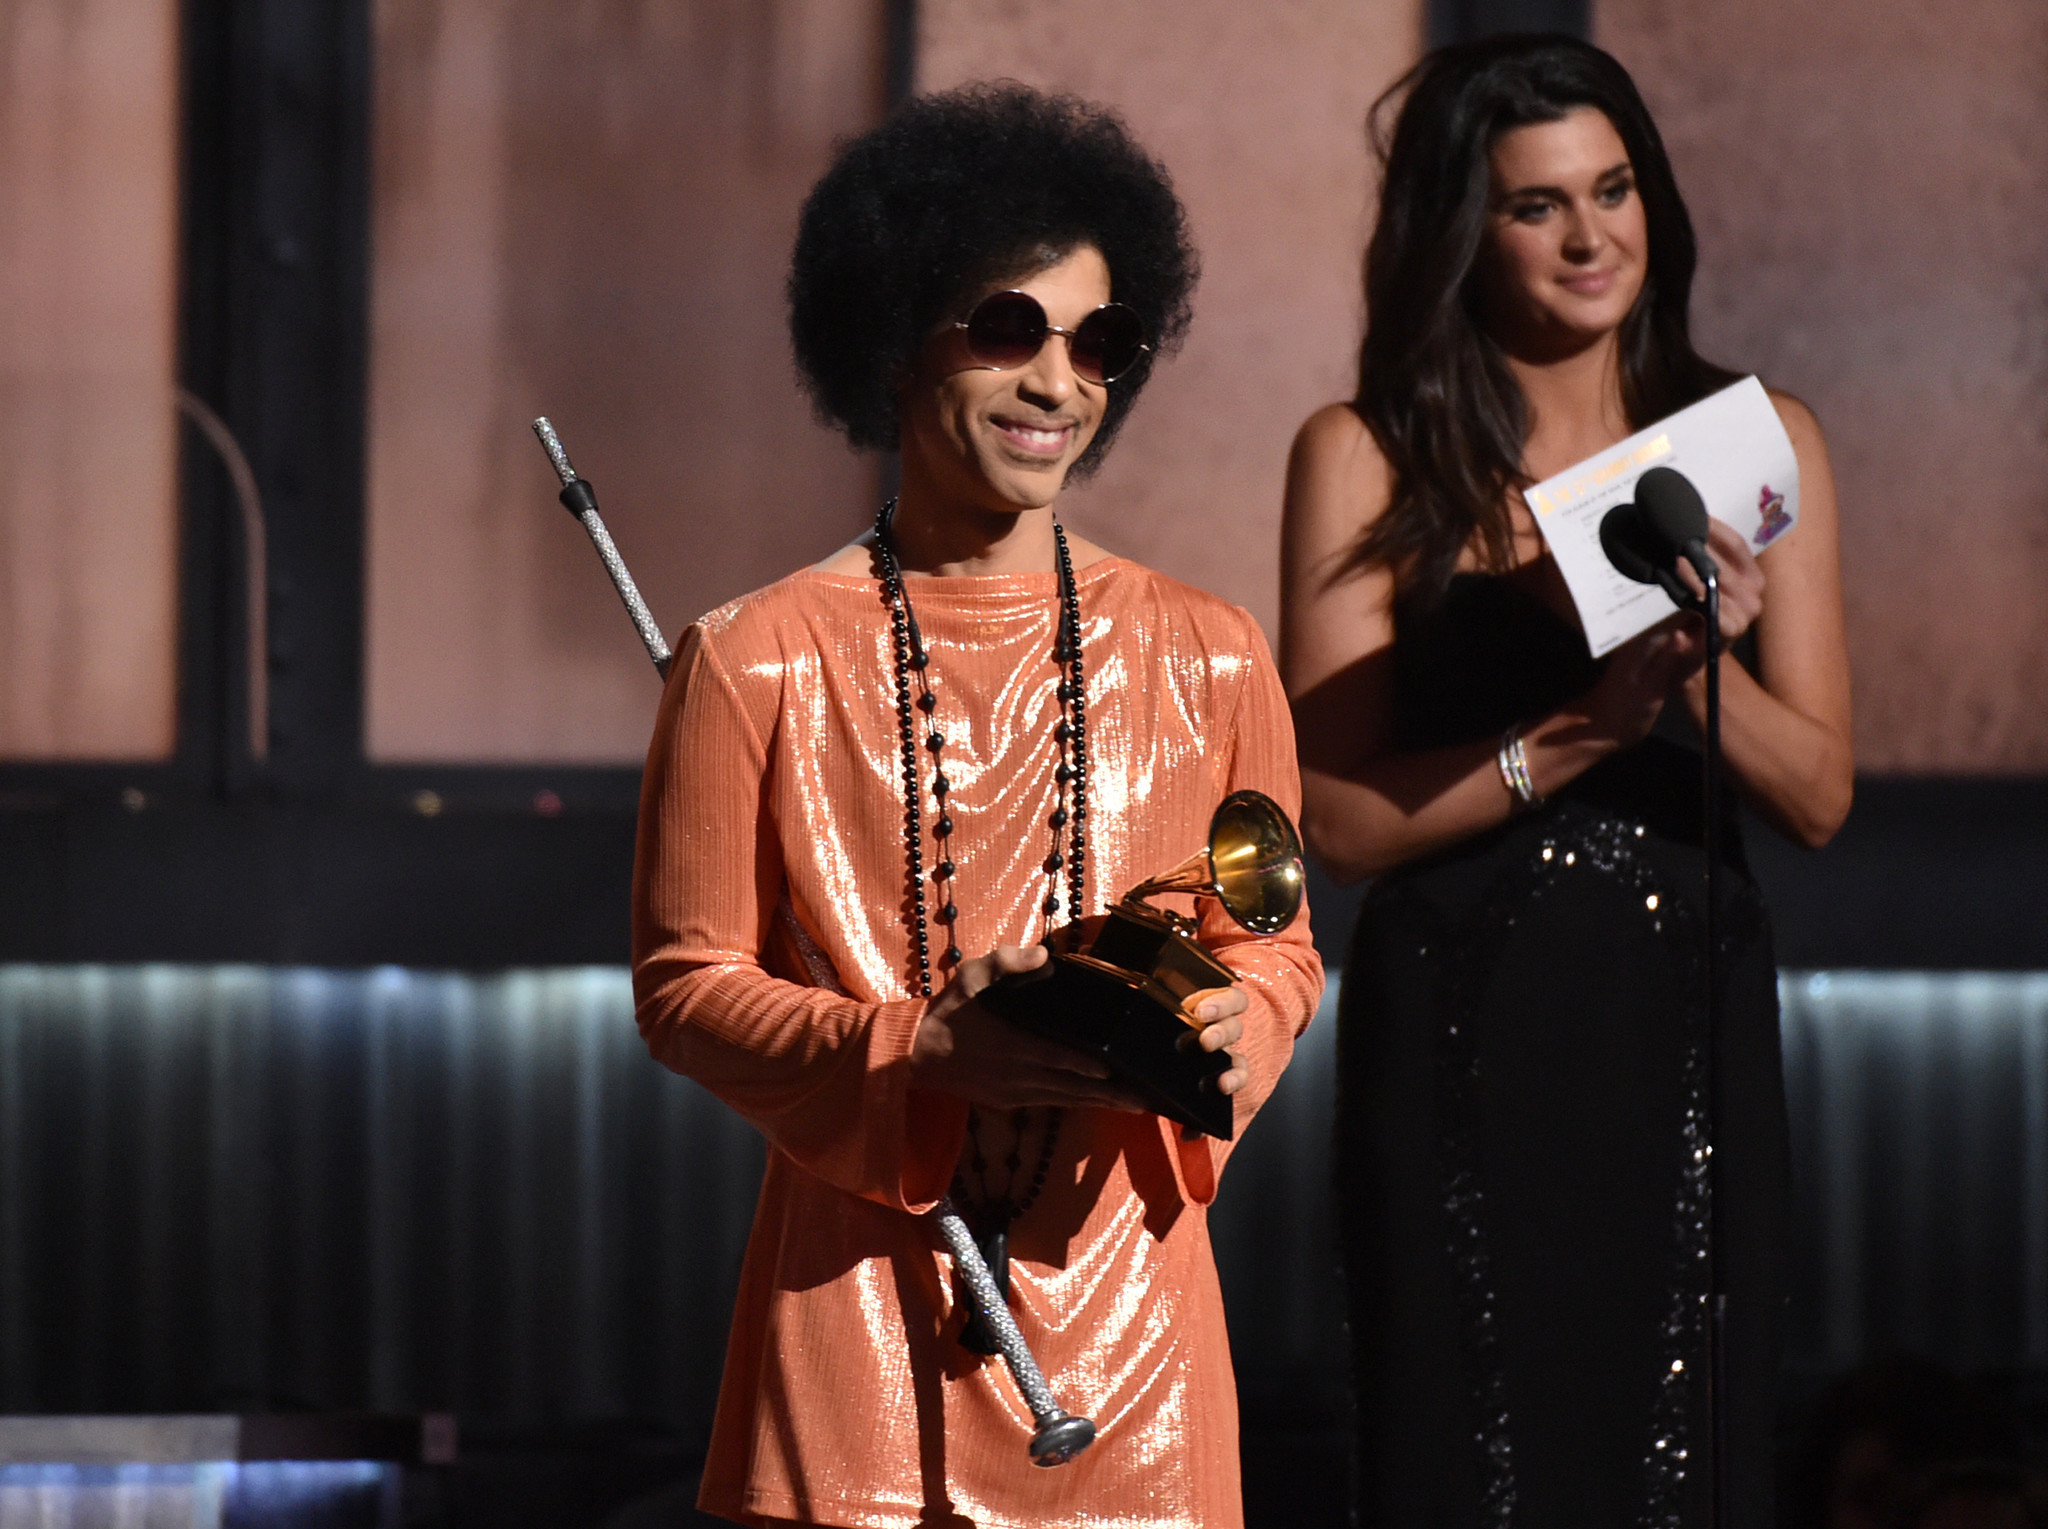 The Grammy Awards at 60: What a long, strange trip it's been